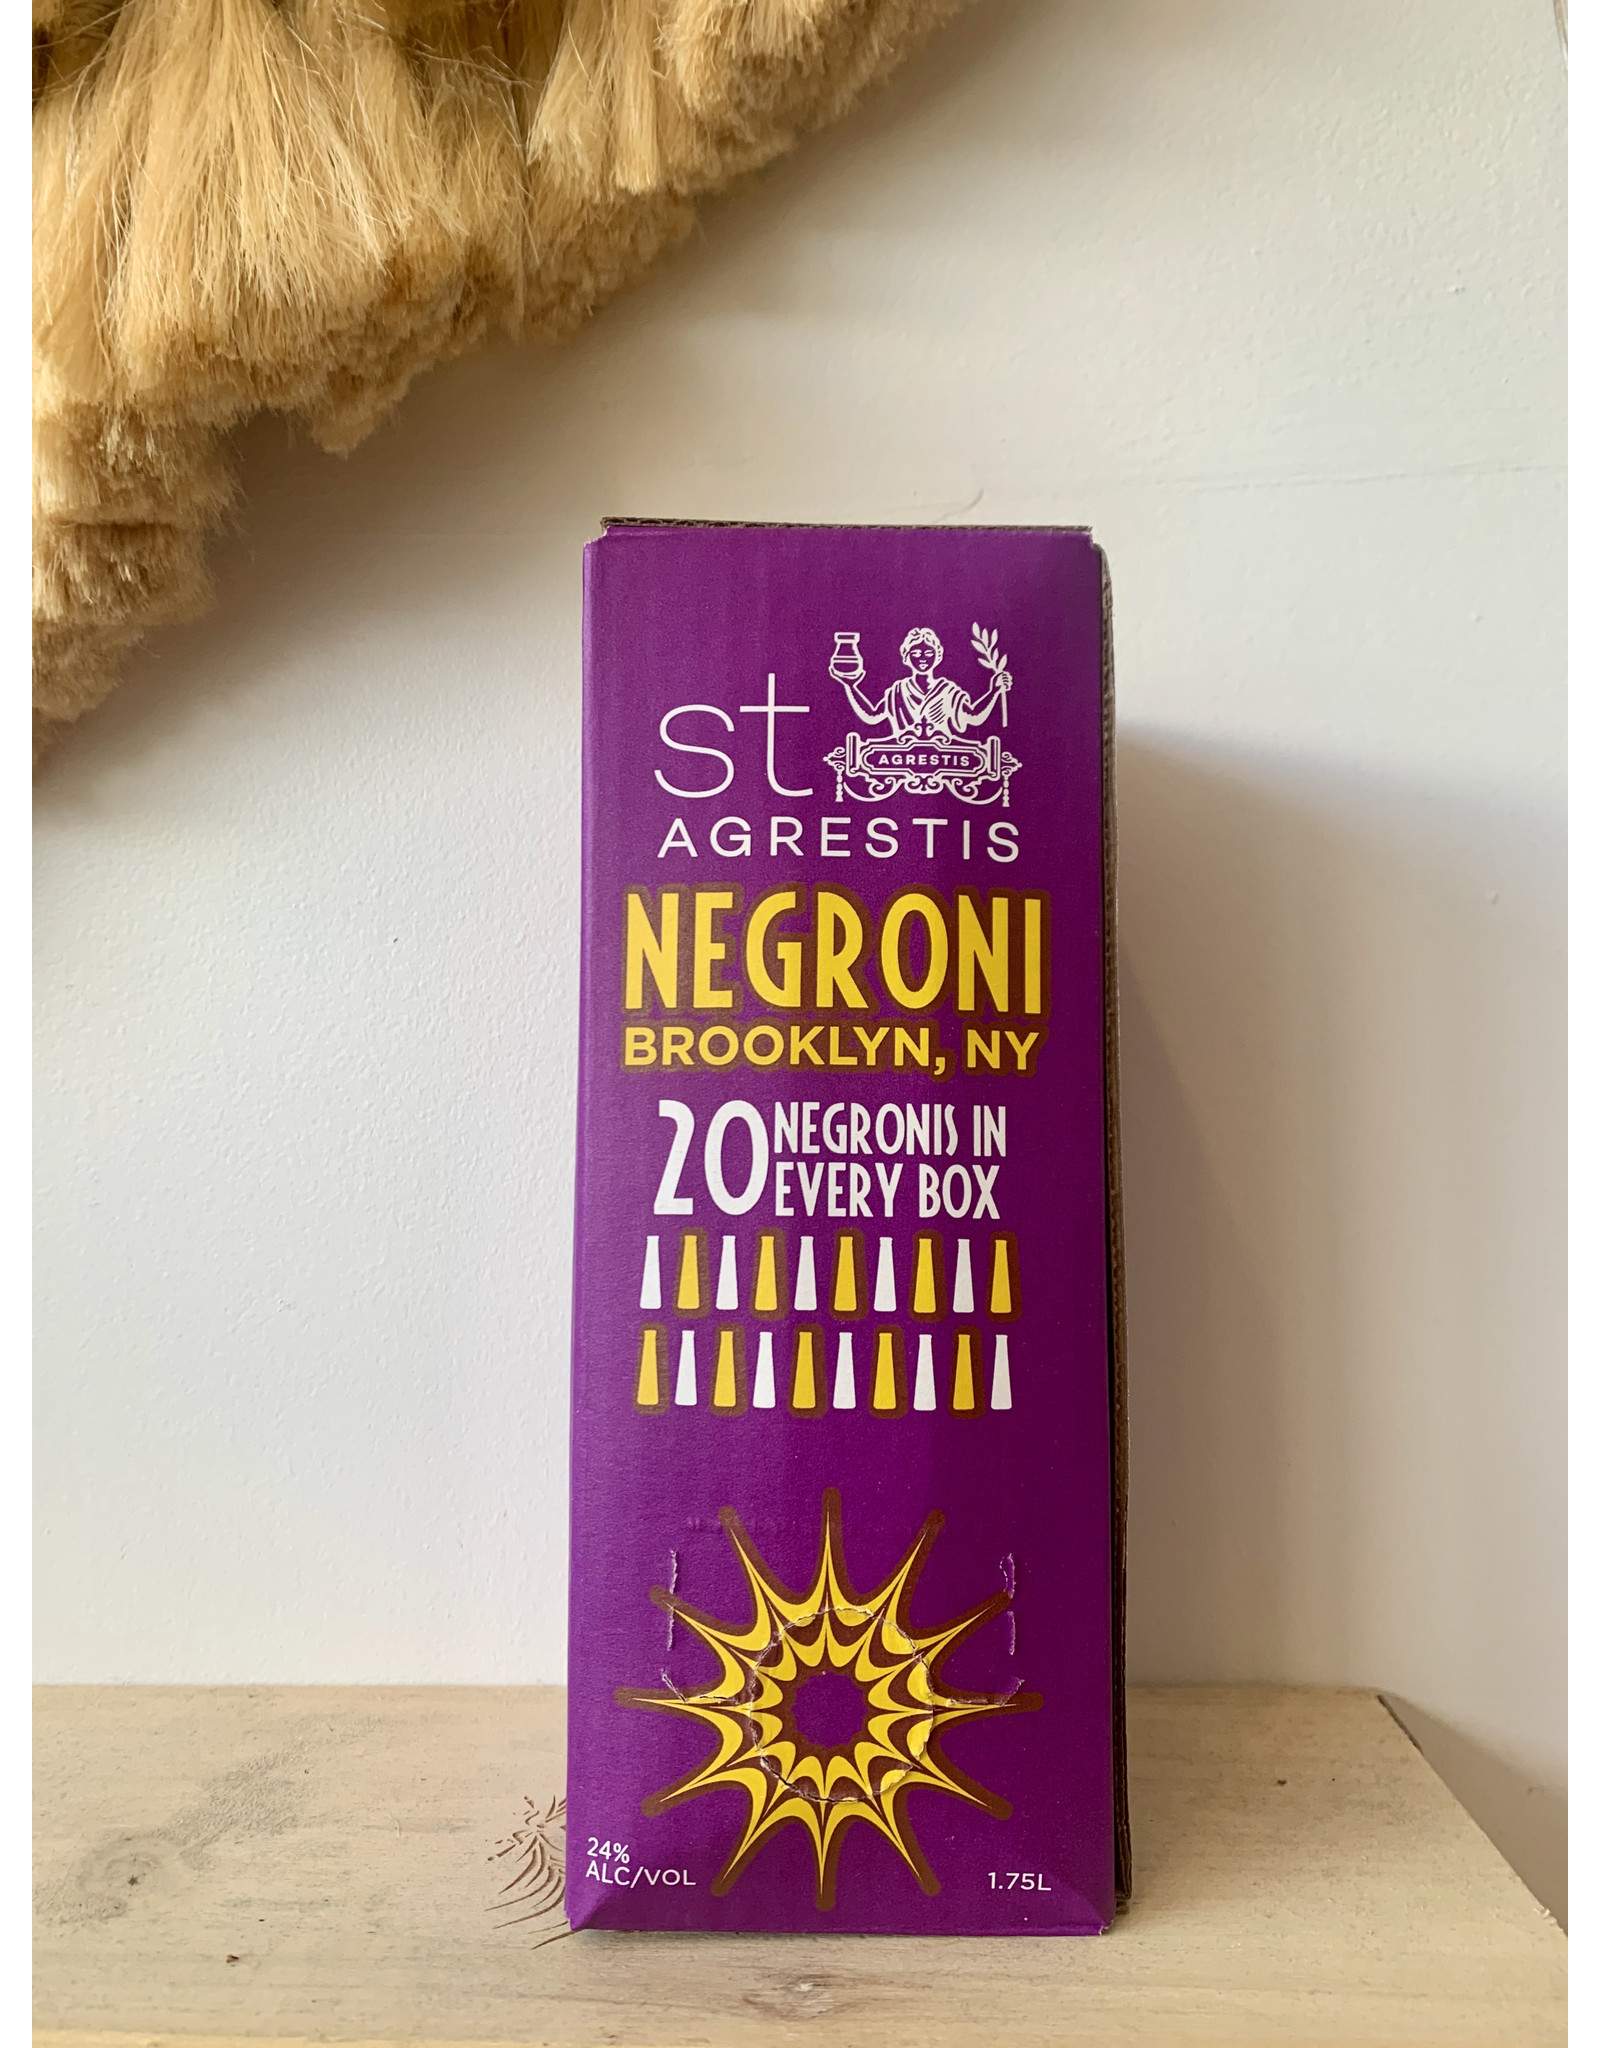 St. Agrestis Negroni in a Box 1.75L